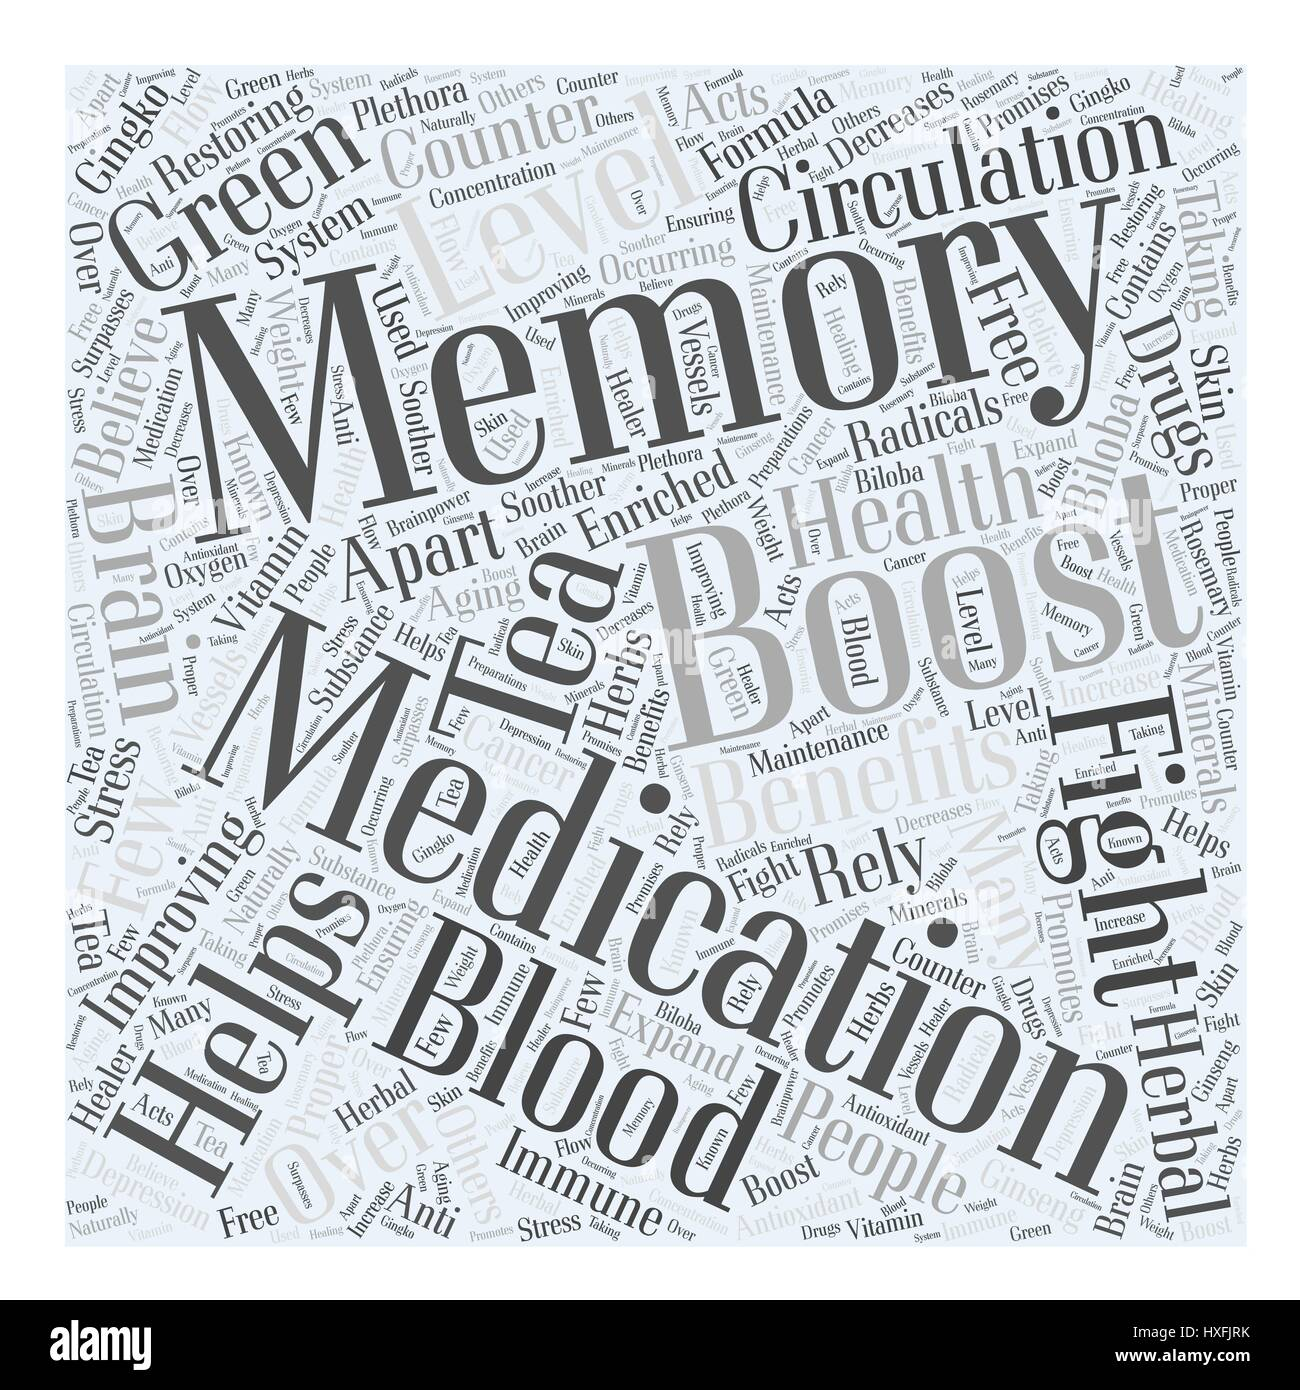 Memory And Your Health Word Cloud Concept - Stock Image